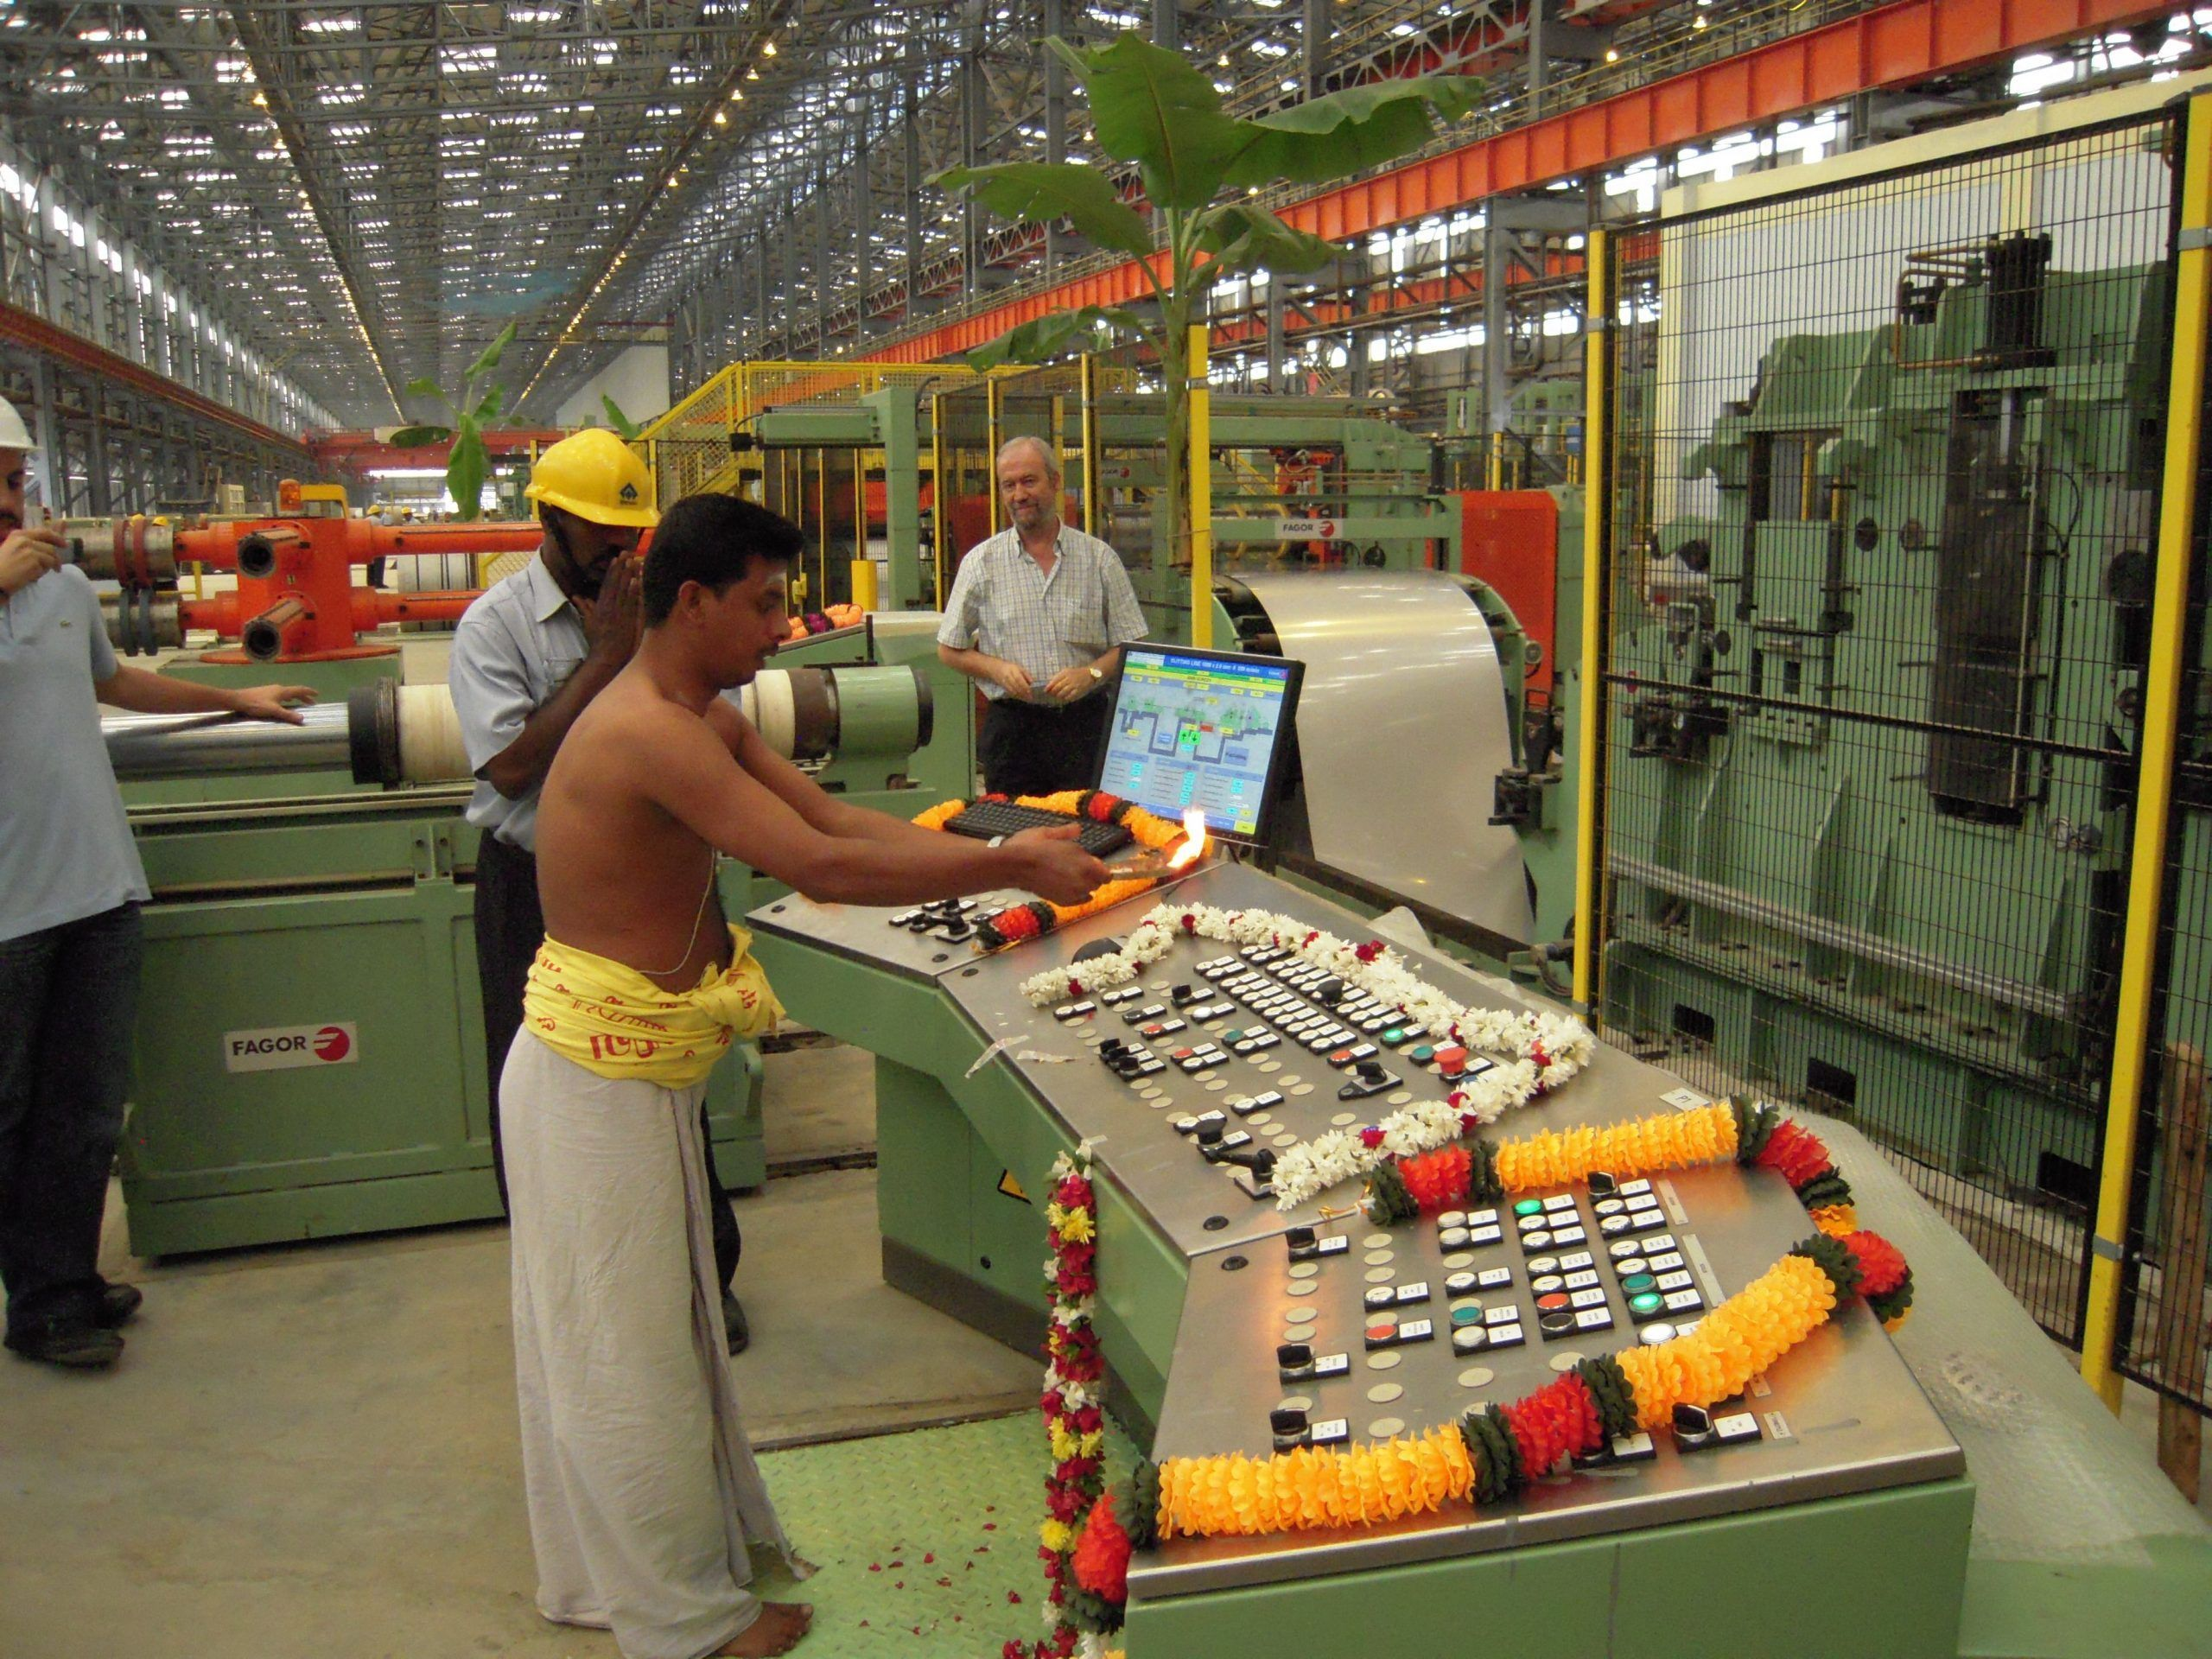 Fagor Arrasate event: Brilliant ceremony during the inauguration of a Fagor's slitting line in India